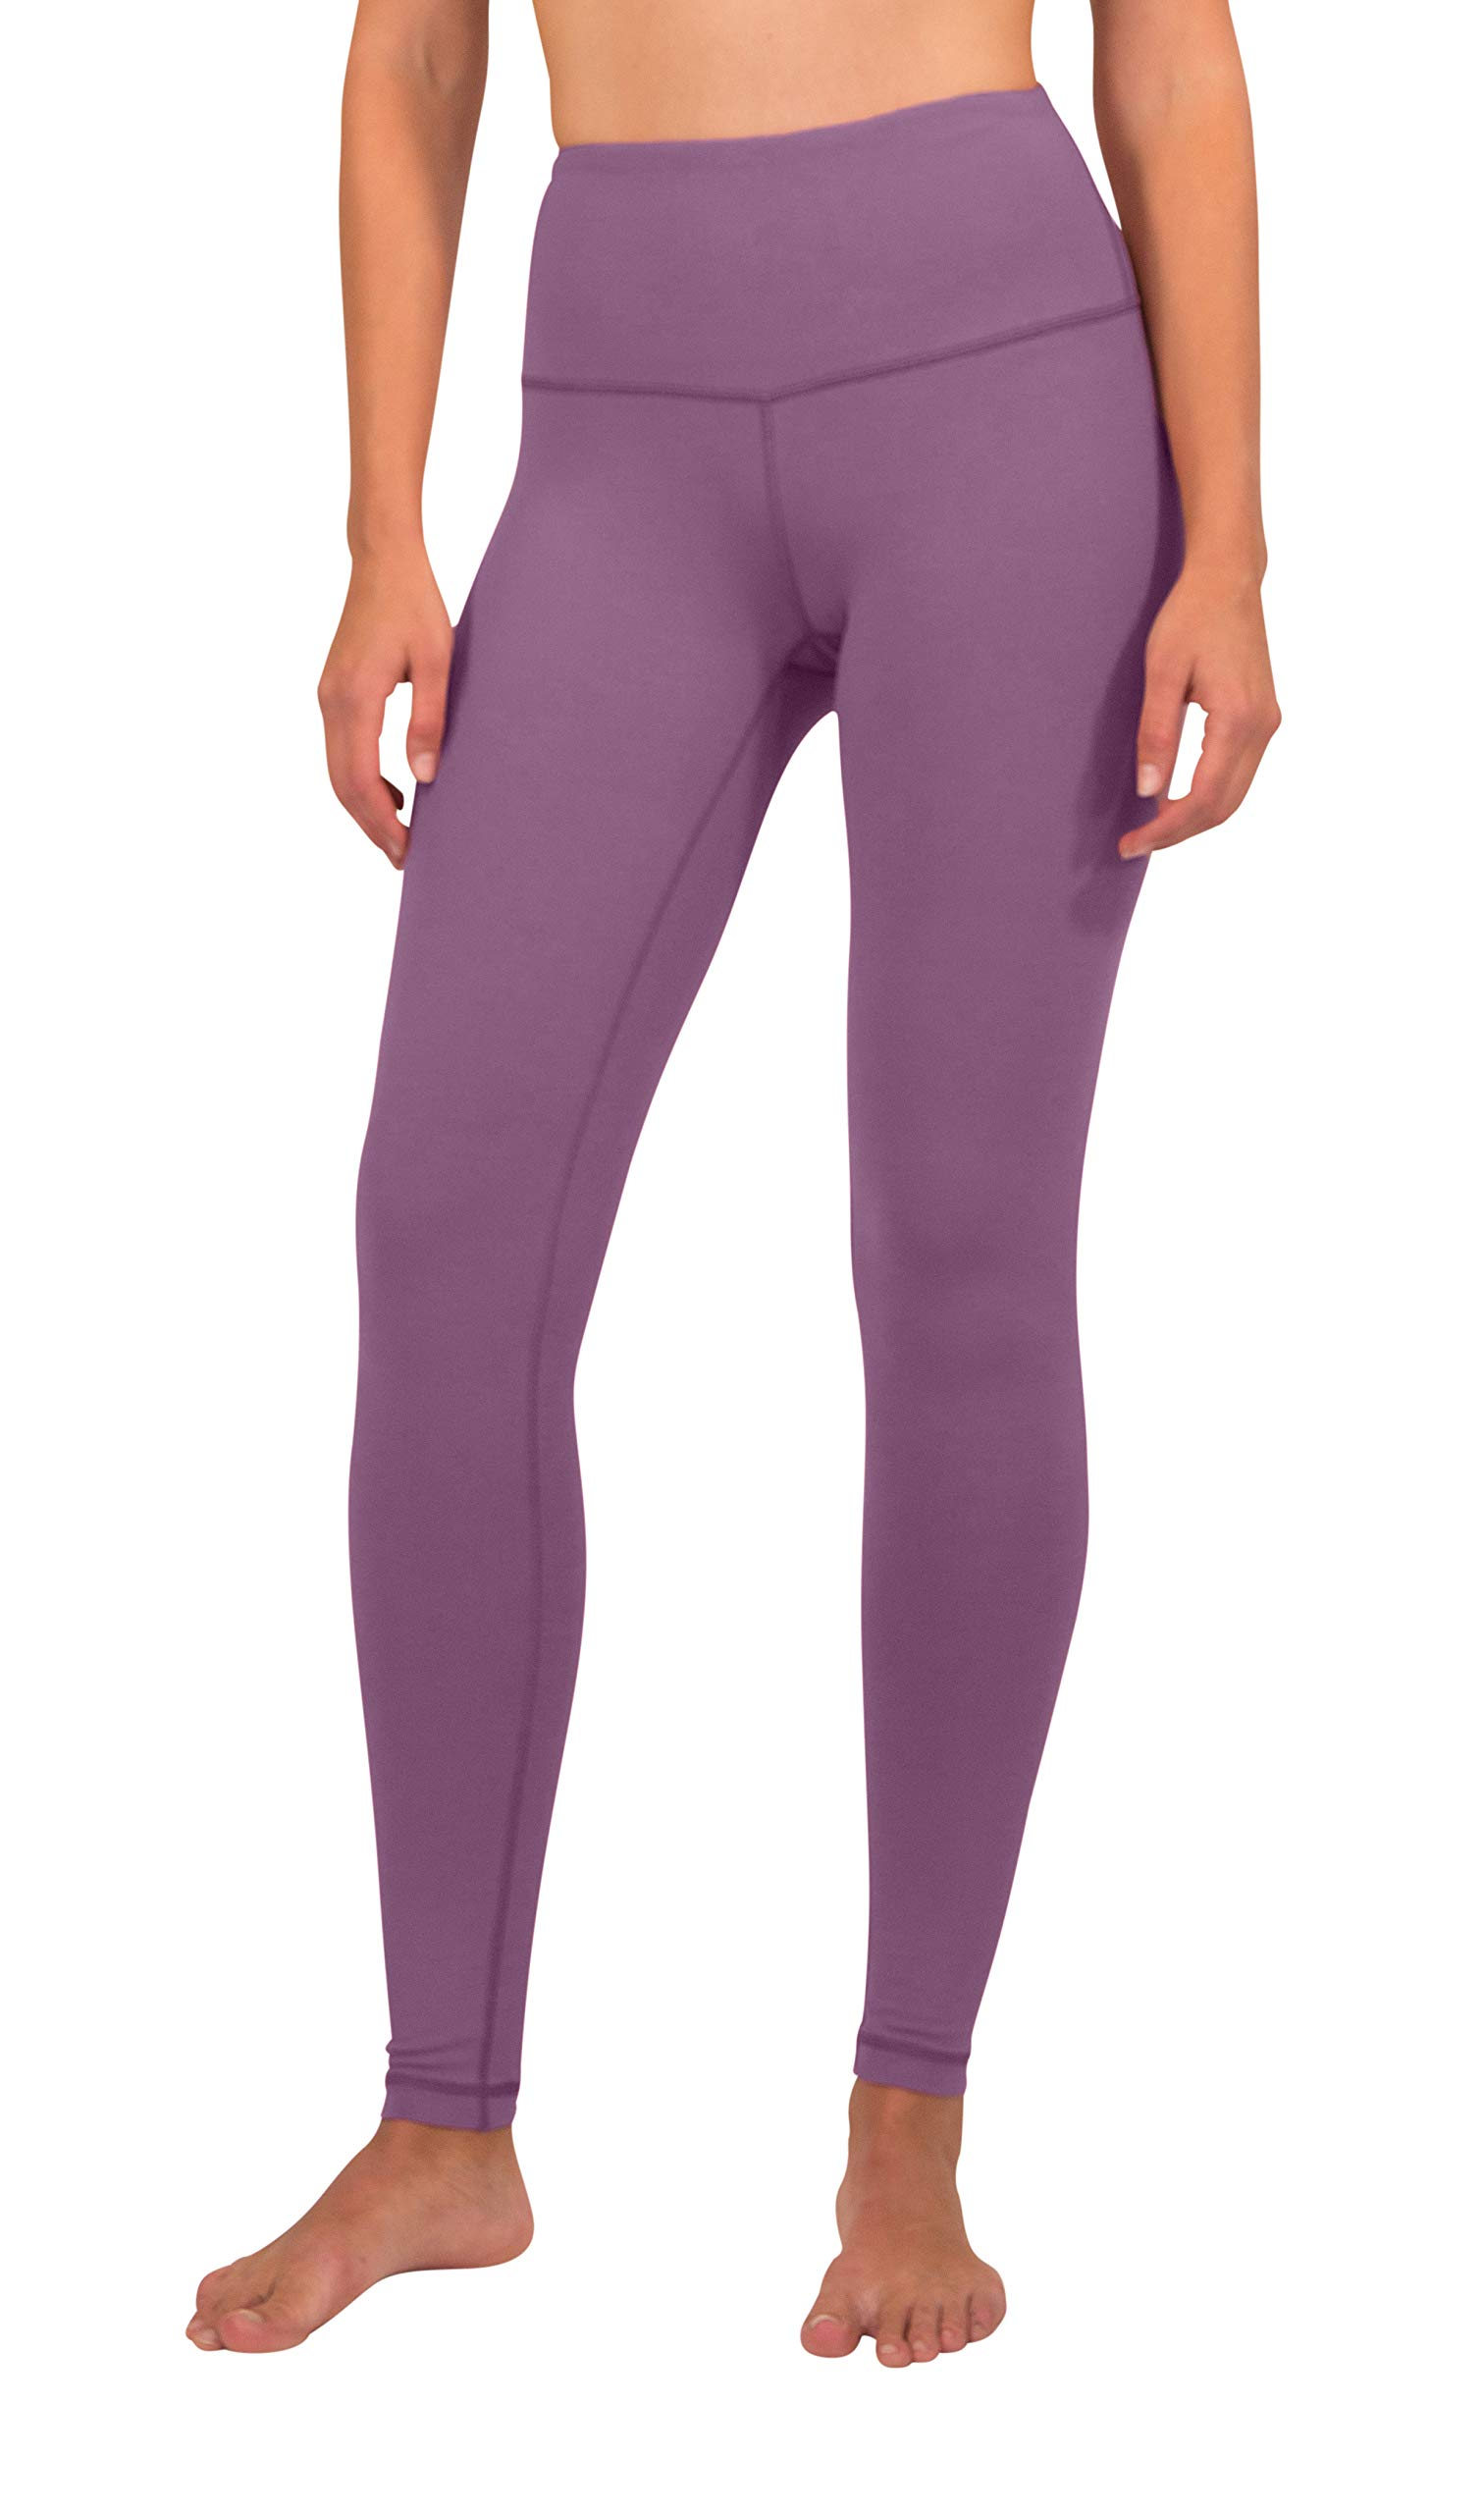 90 Degree By Reflex - High Waist Power Flex Legging - Tummy Control - Purple Dash - Small by 90 Degree By Reflex